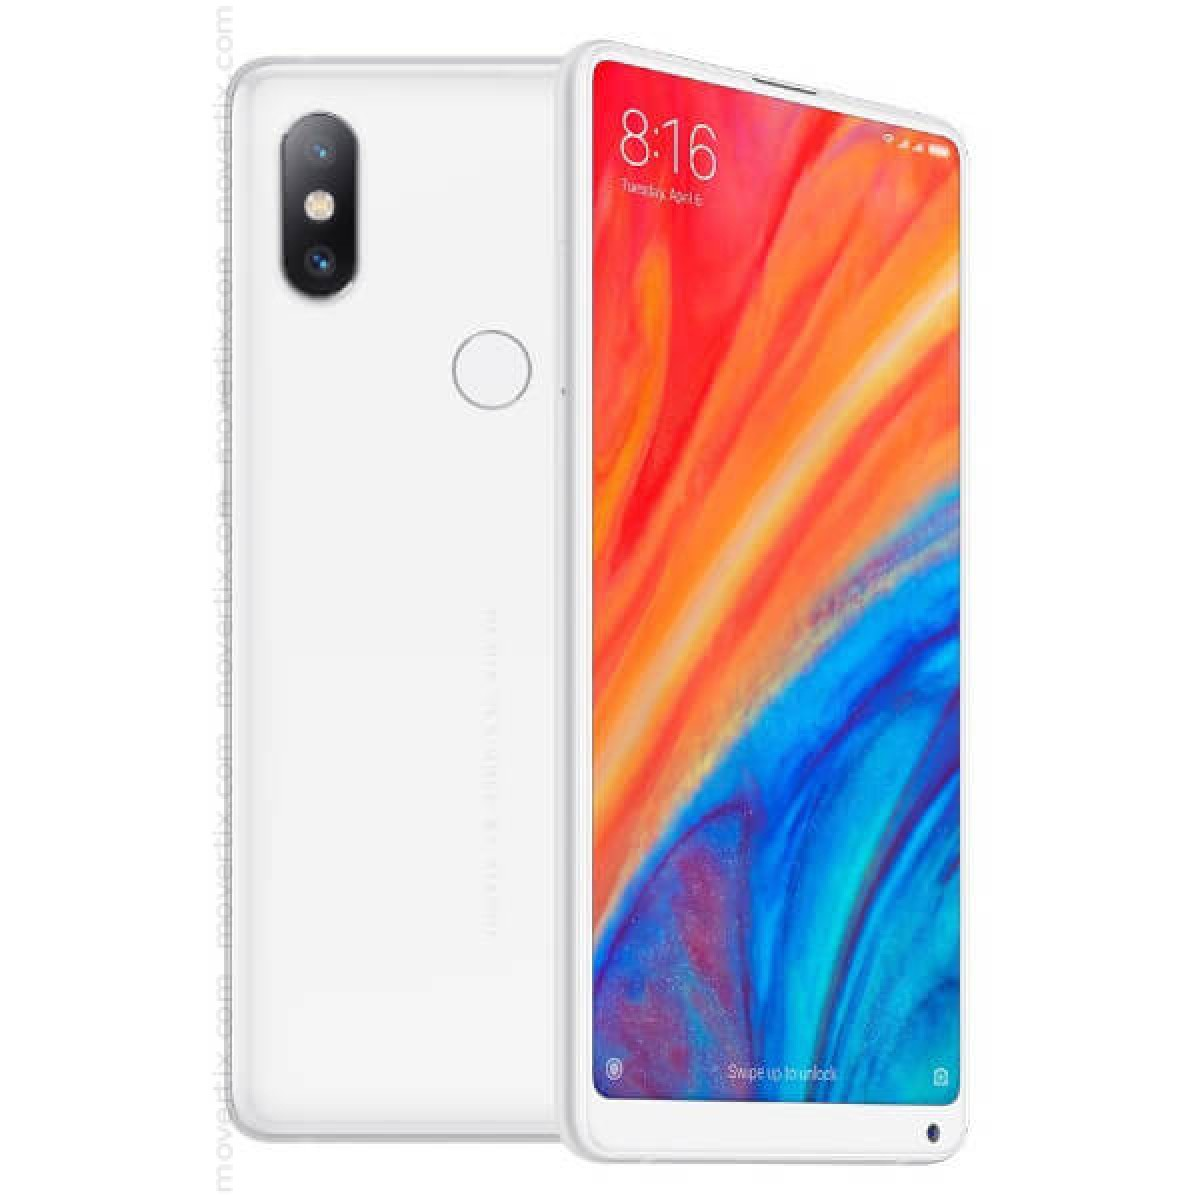 5c7f3da8488 The Xiaomi Mi Mix 2S in white color has an exclusive curved ceramic design  and all screen